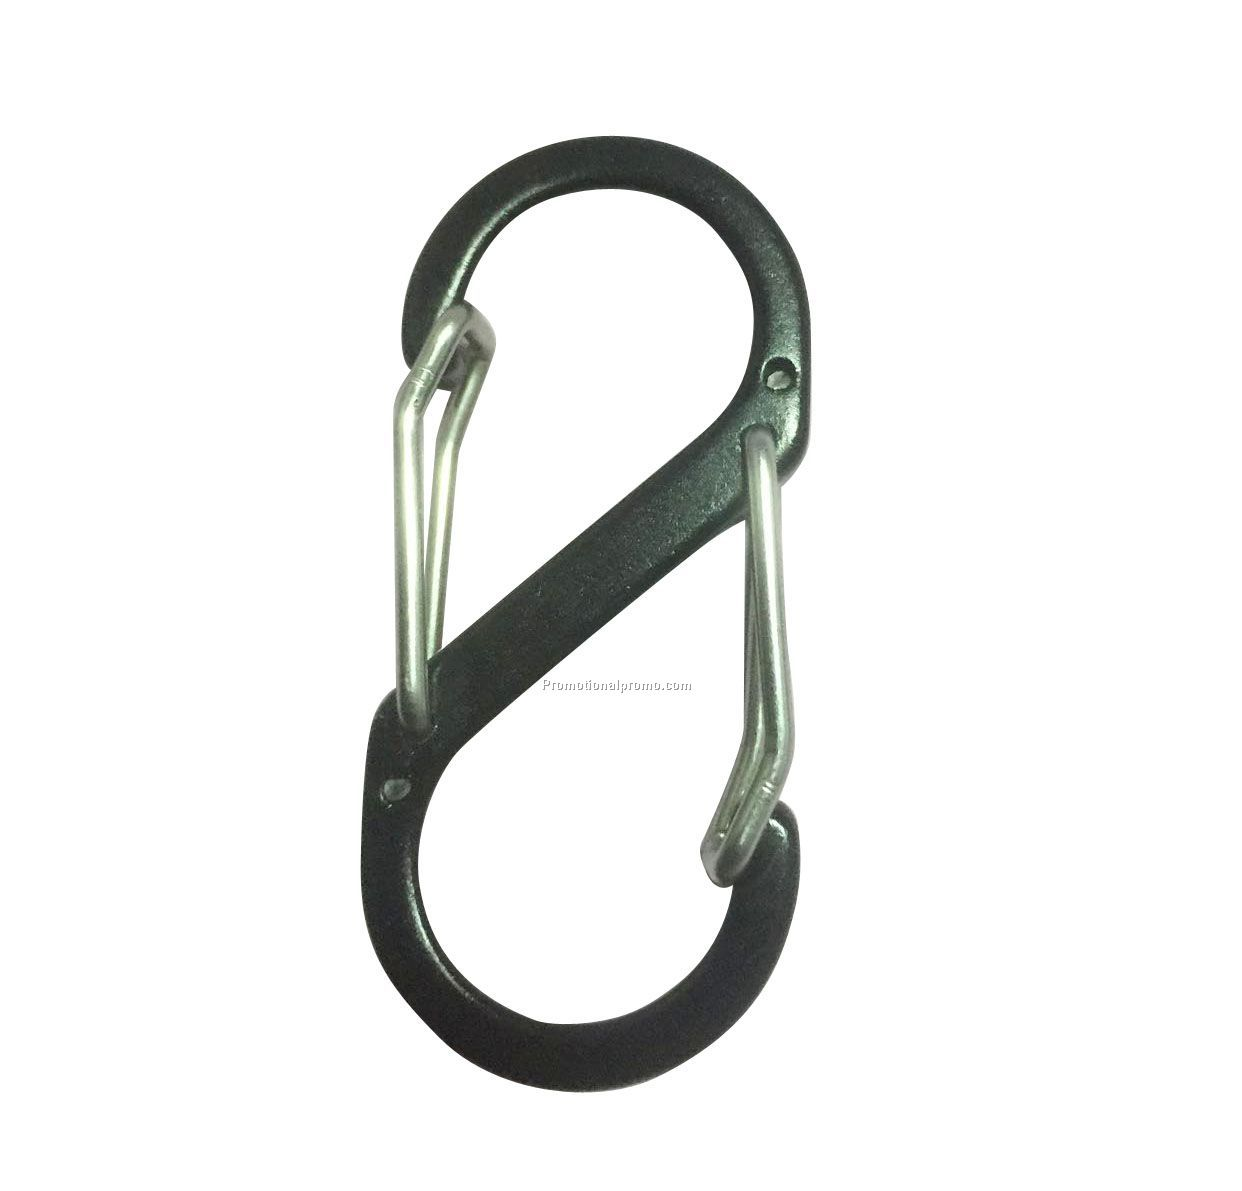 Key Shaped Key Rack S Shape Carabiner For Key Holder China Wholesale Sc16100901b